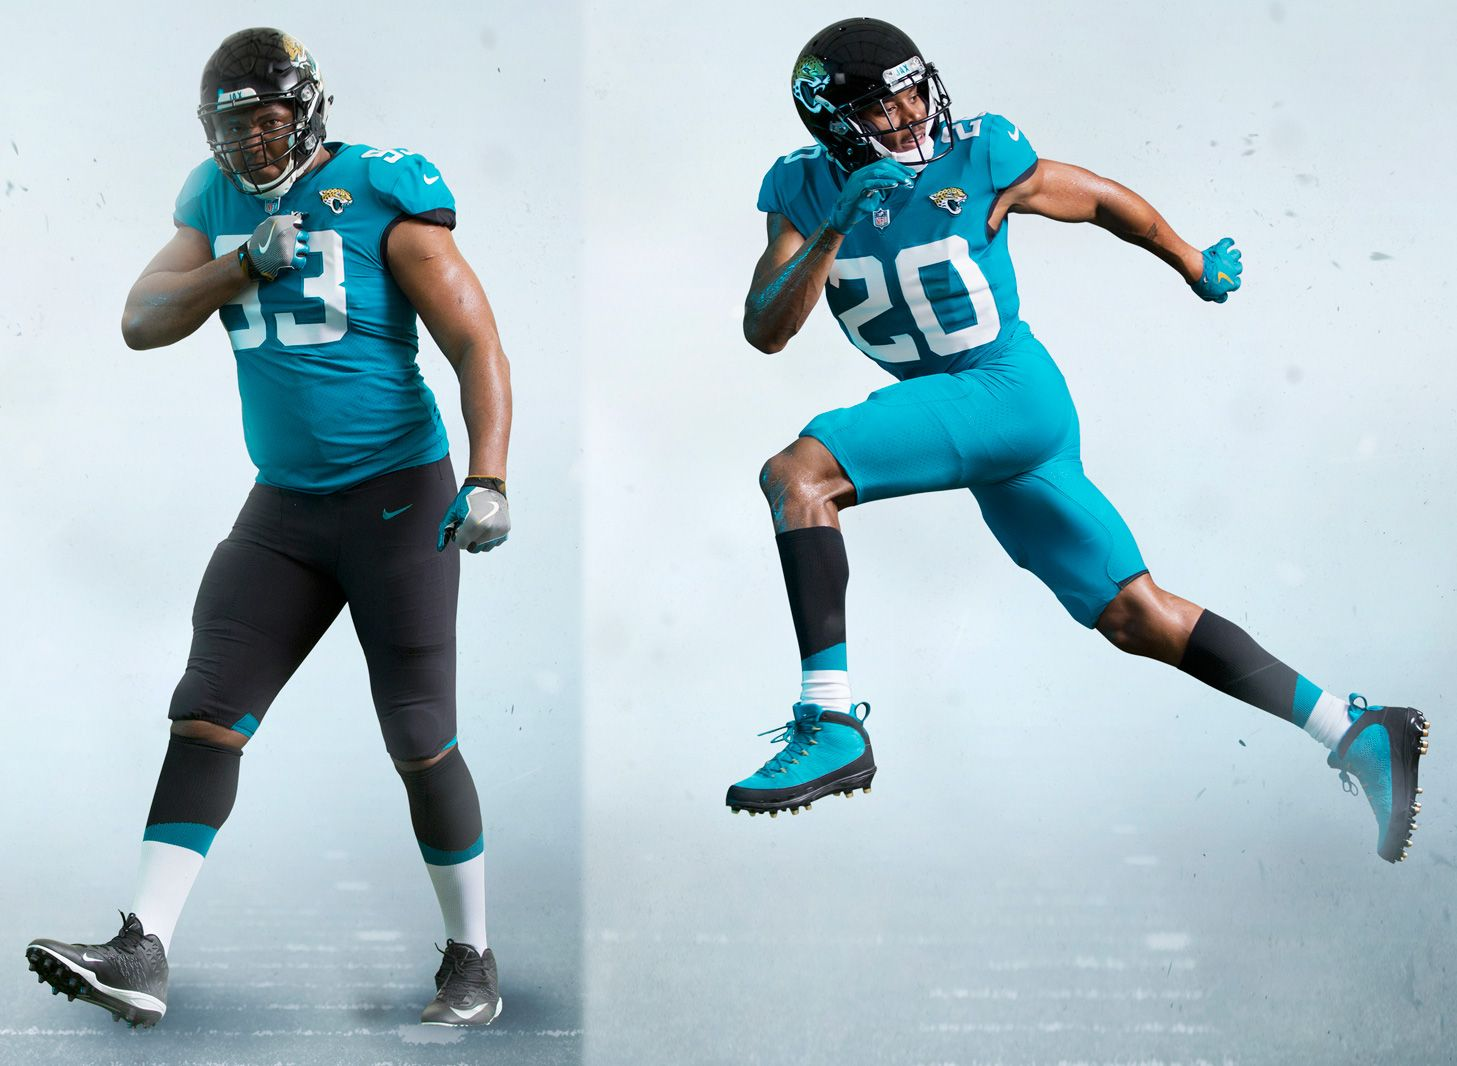 reputable site 5a5da 155b2 Jacksonville Jaguars Unveil Stripped-Down Uniforms | Chris ...